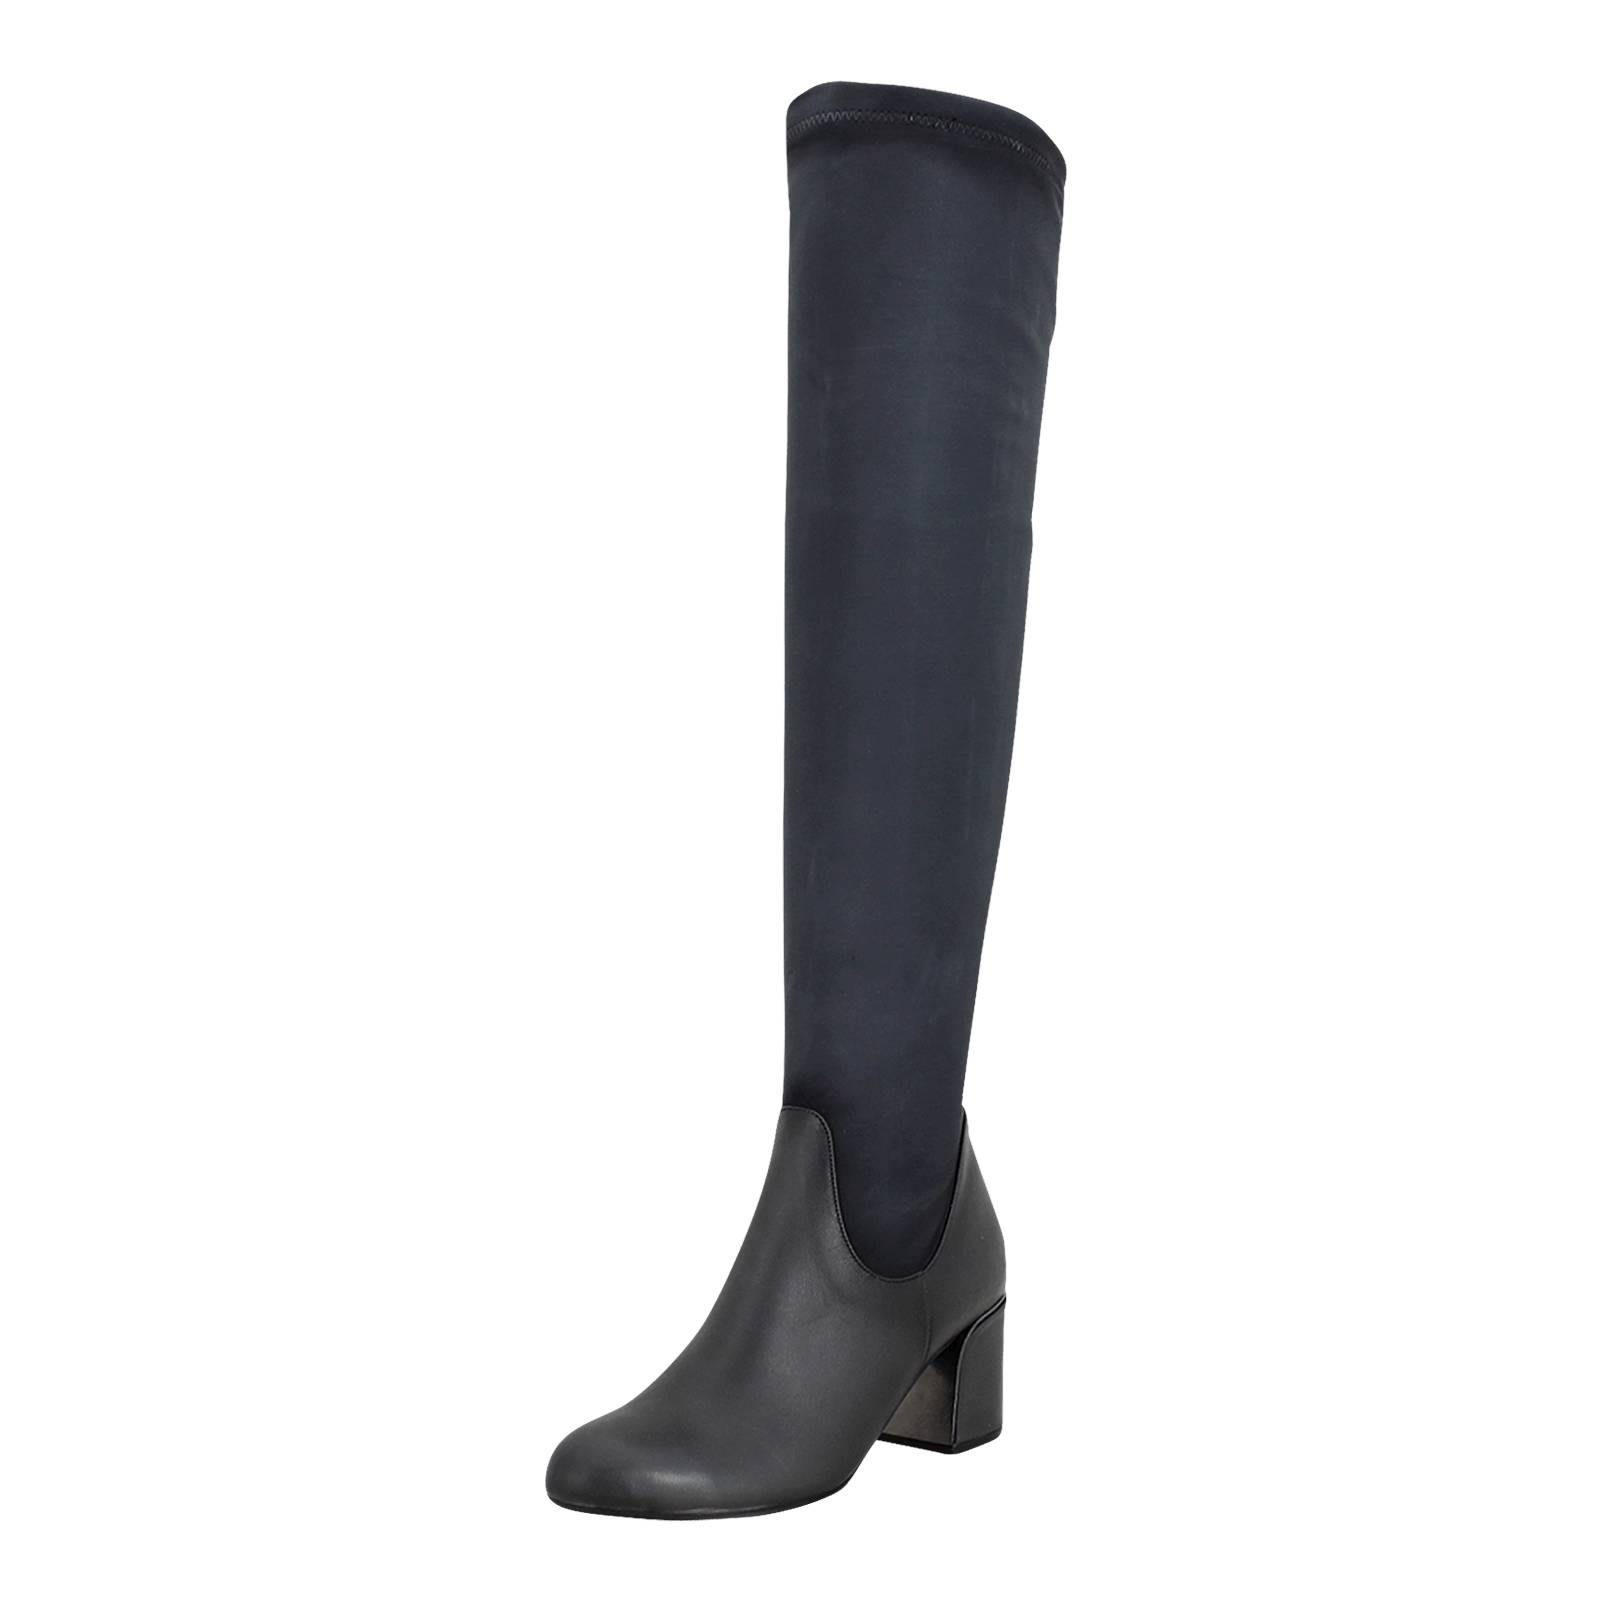 Battigny - Esthissis Women s boots made of leather and lycra ... 9c0c4e45bac